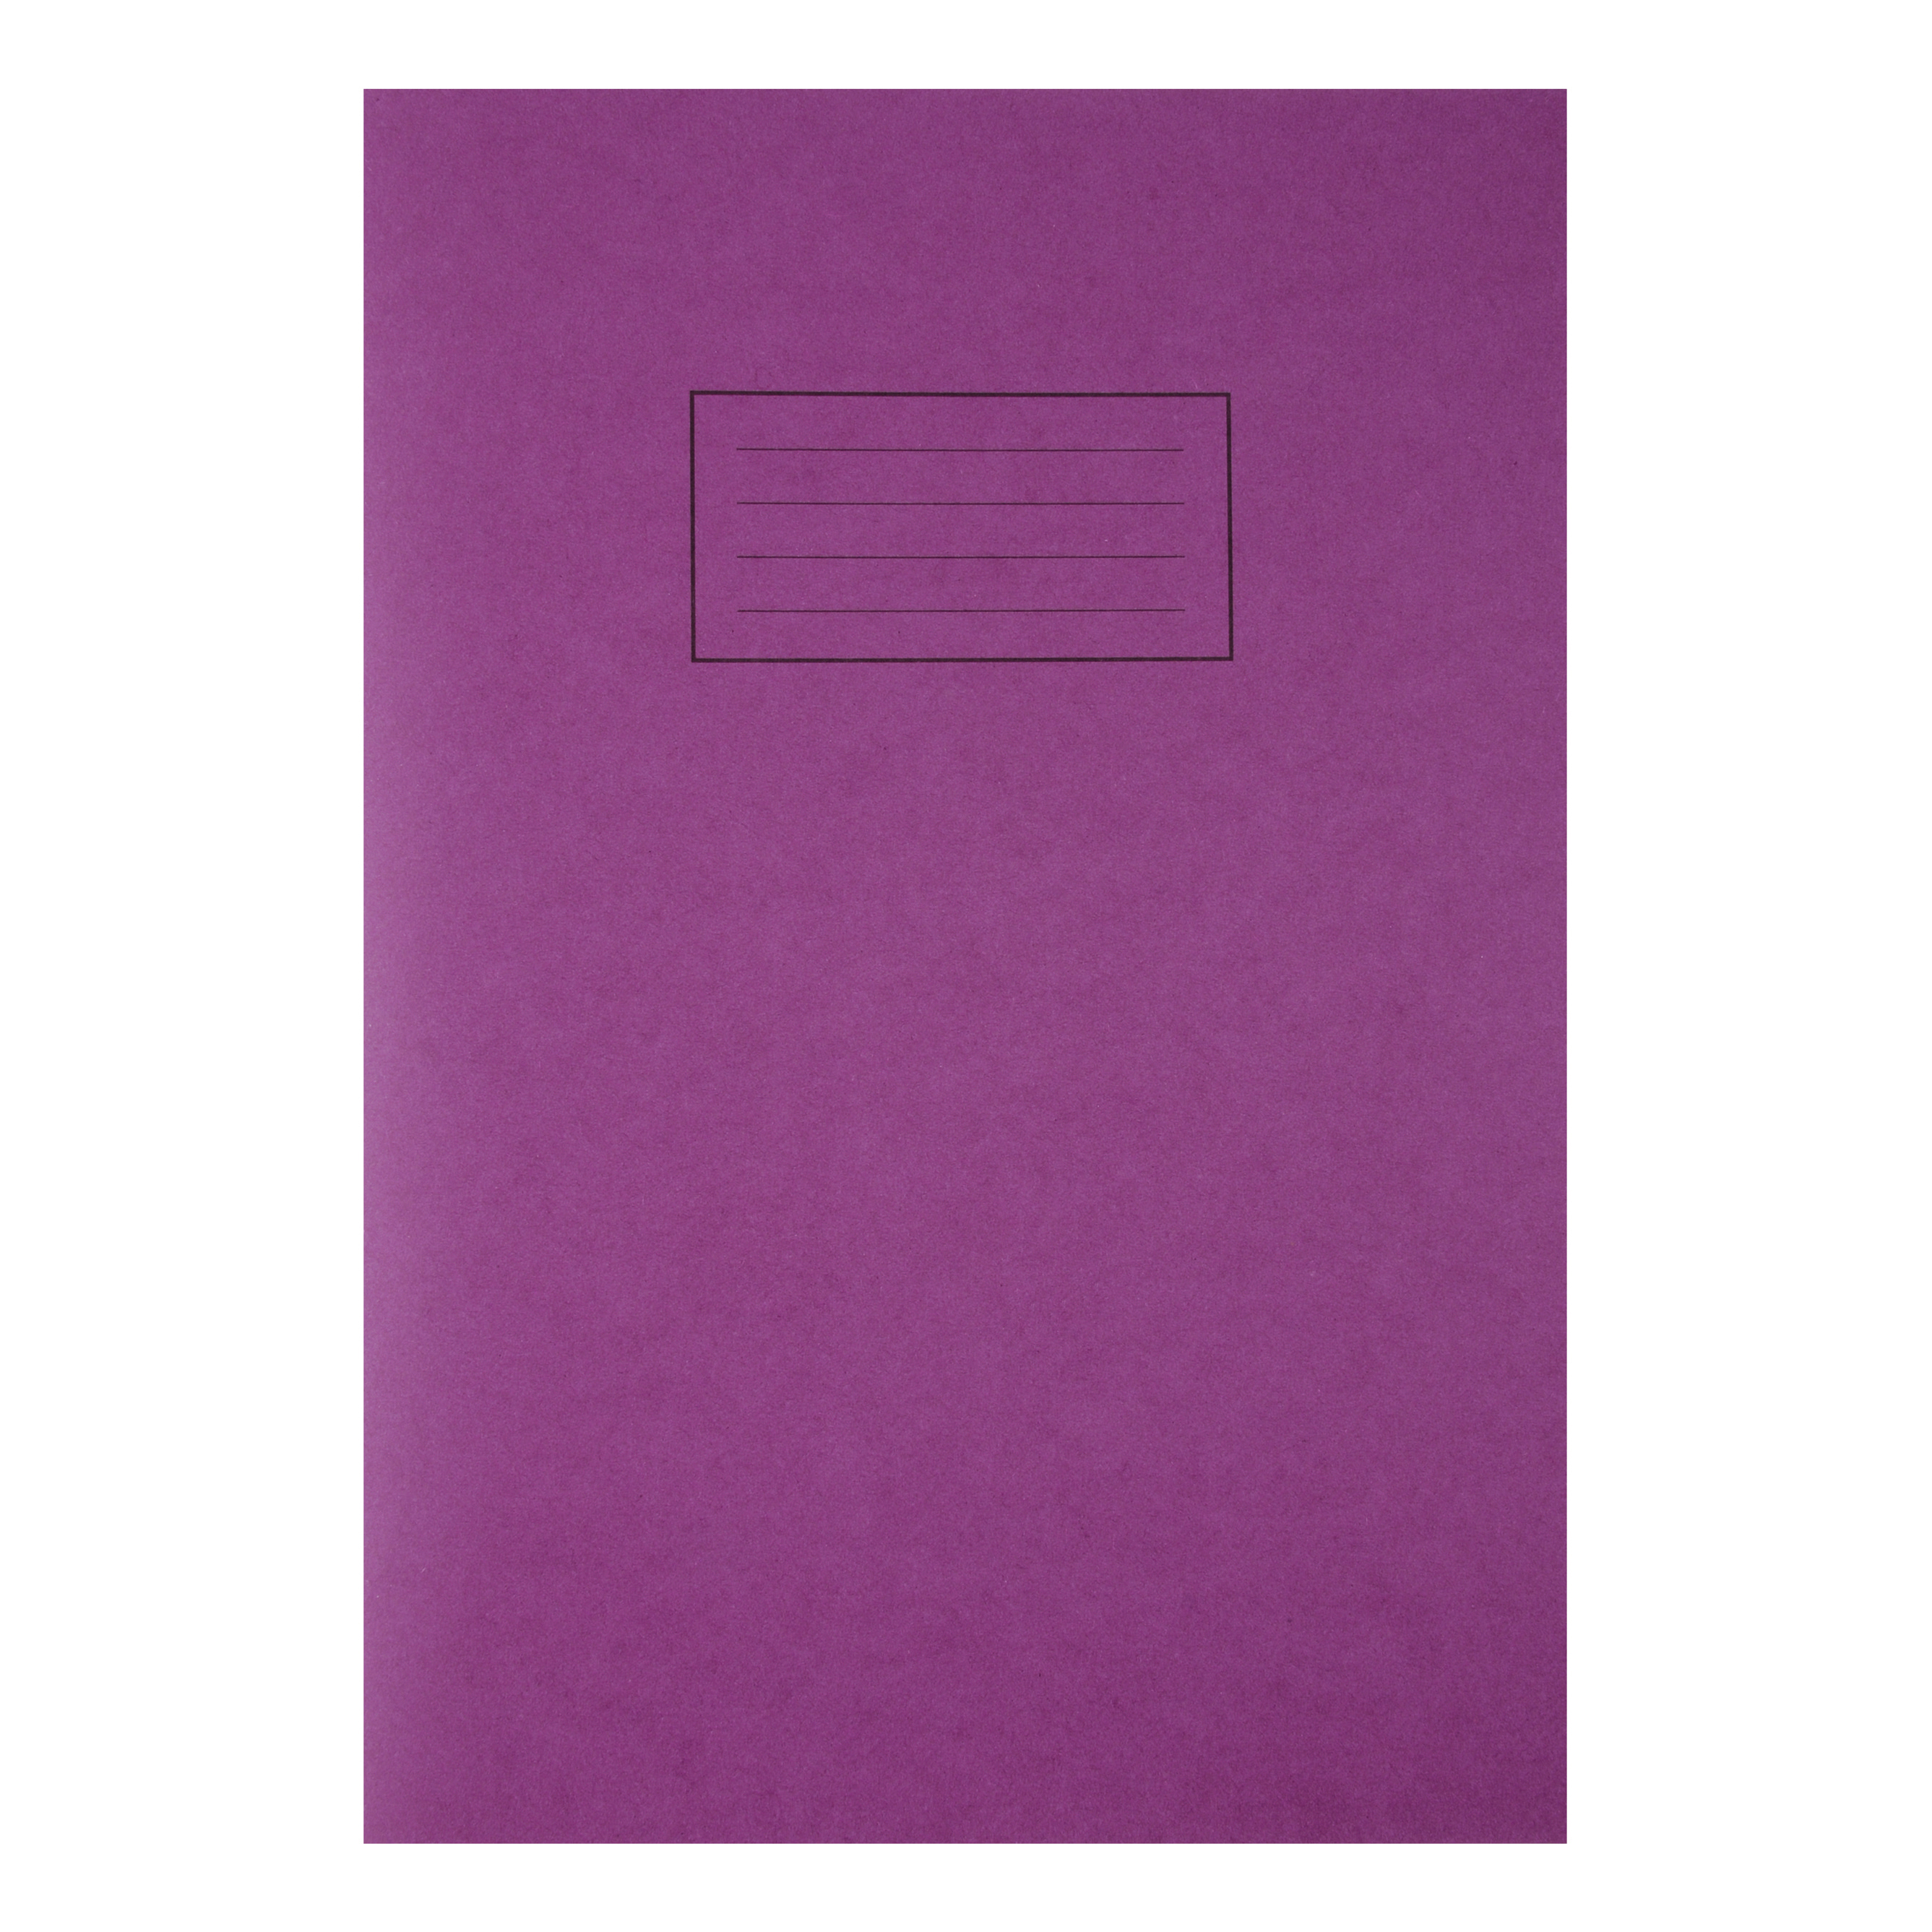 Silvine Exercise Book Ruled and Margin 80 Pages 75gsm A4 Purple Ref EX111 Pack 10